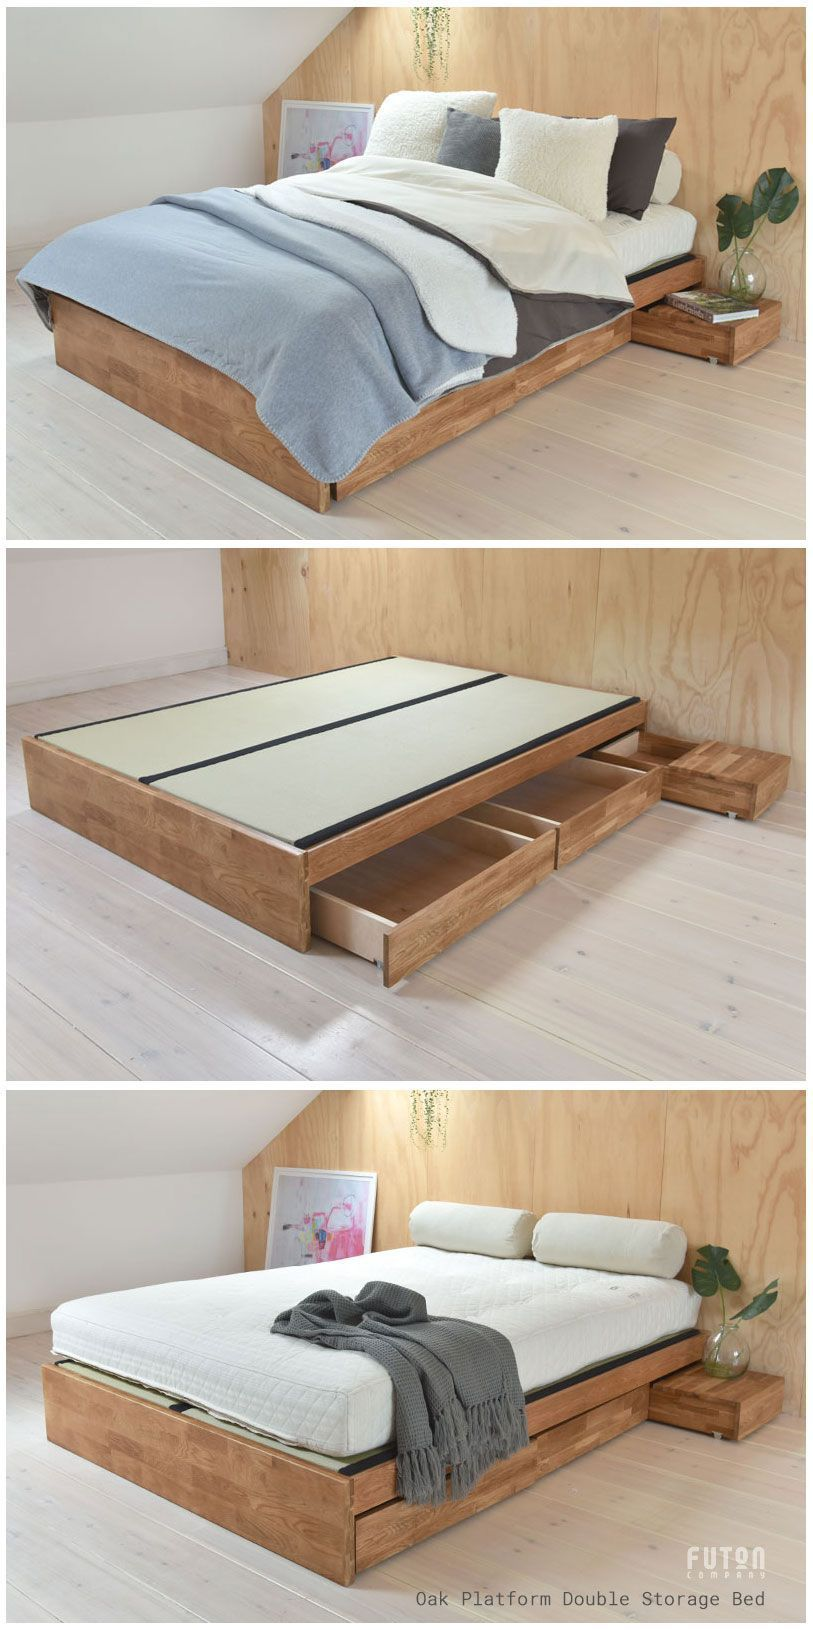 Pin By Abril Cusihuaman On Chambres A Coucher In 2021 Bedroom Bed Design Wooden Bed With Storage Bed Frame Design